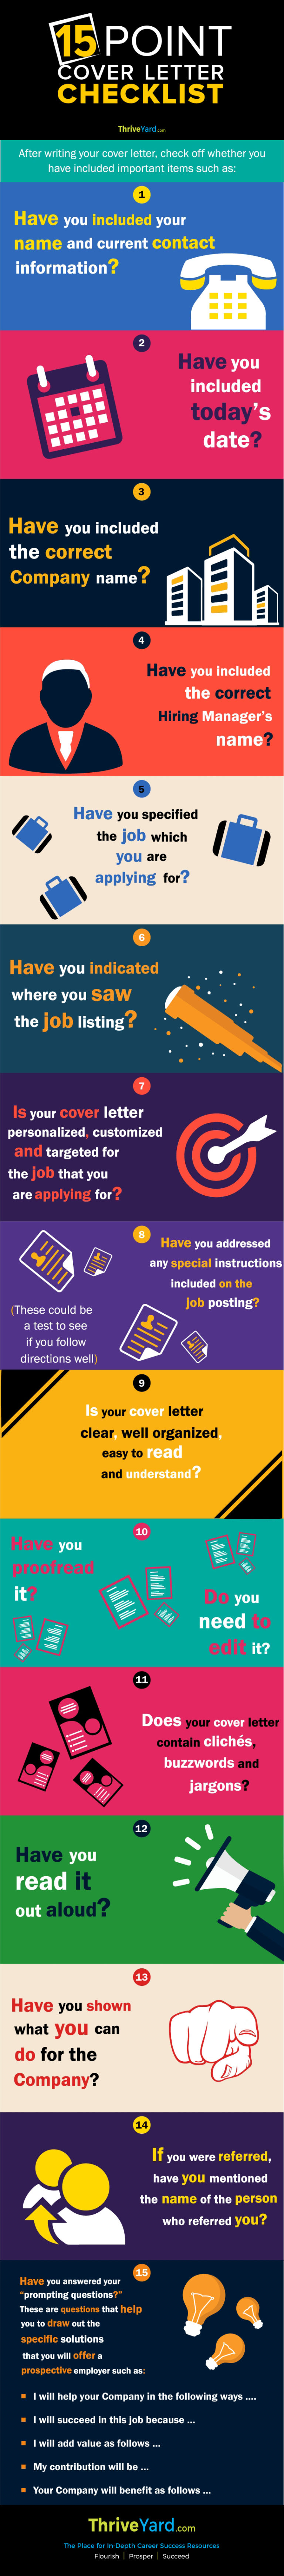 15-Point Cover Letter Checklist - Infographic | ThriveYard